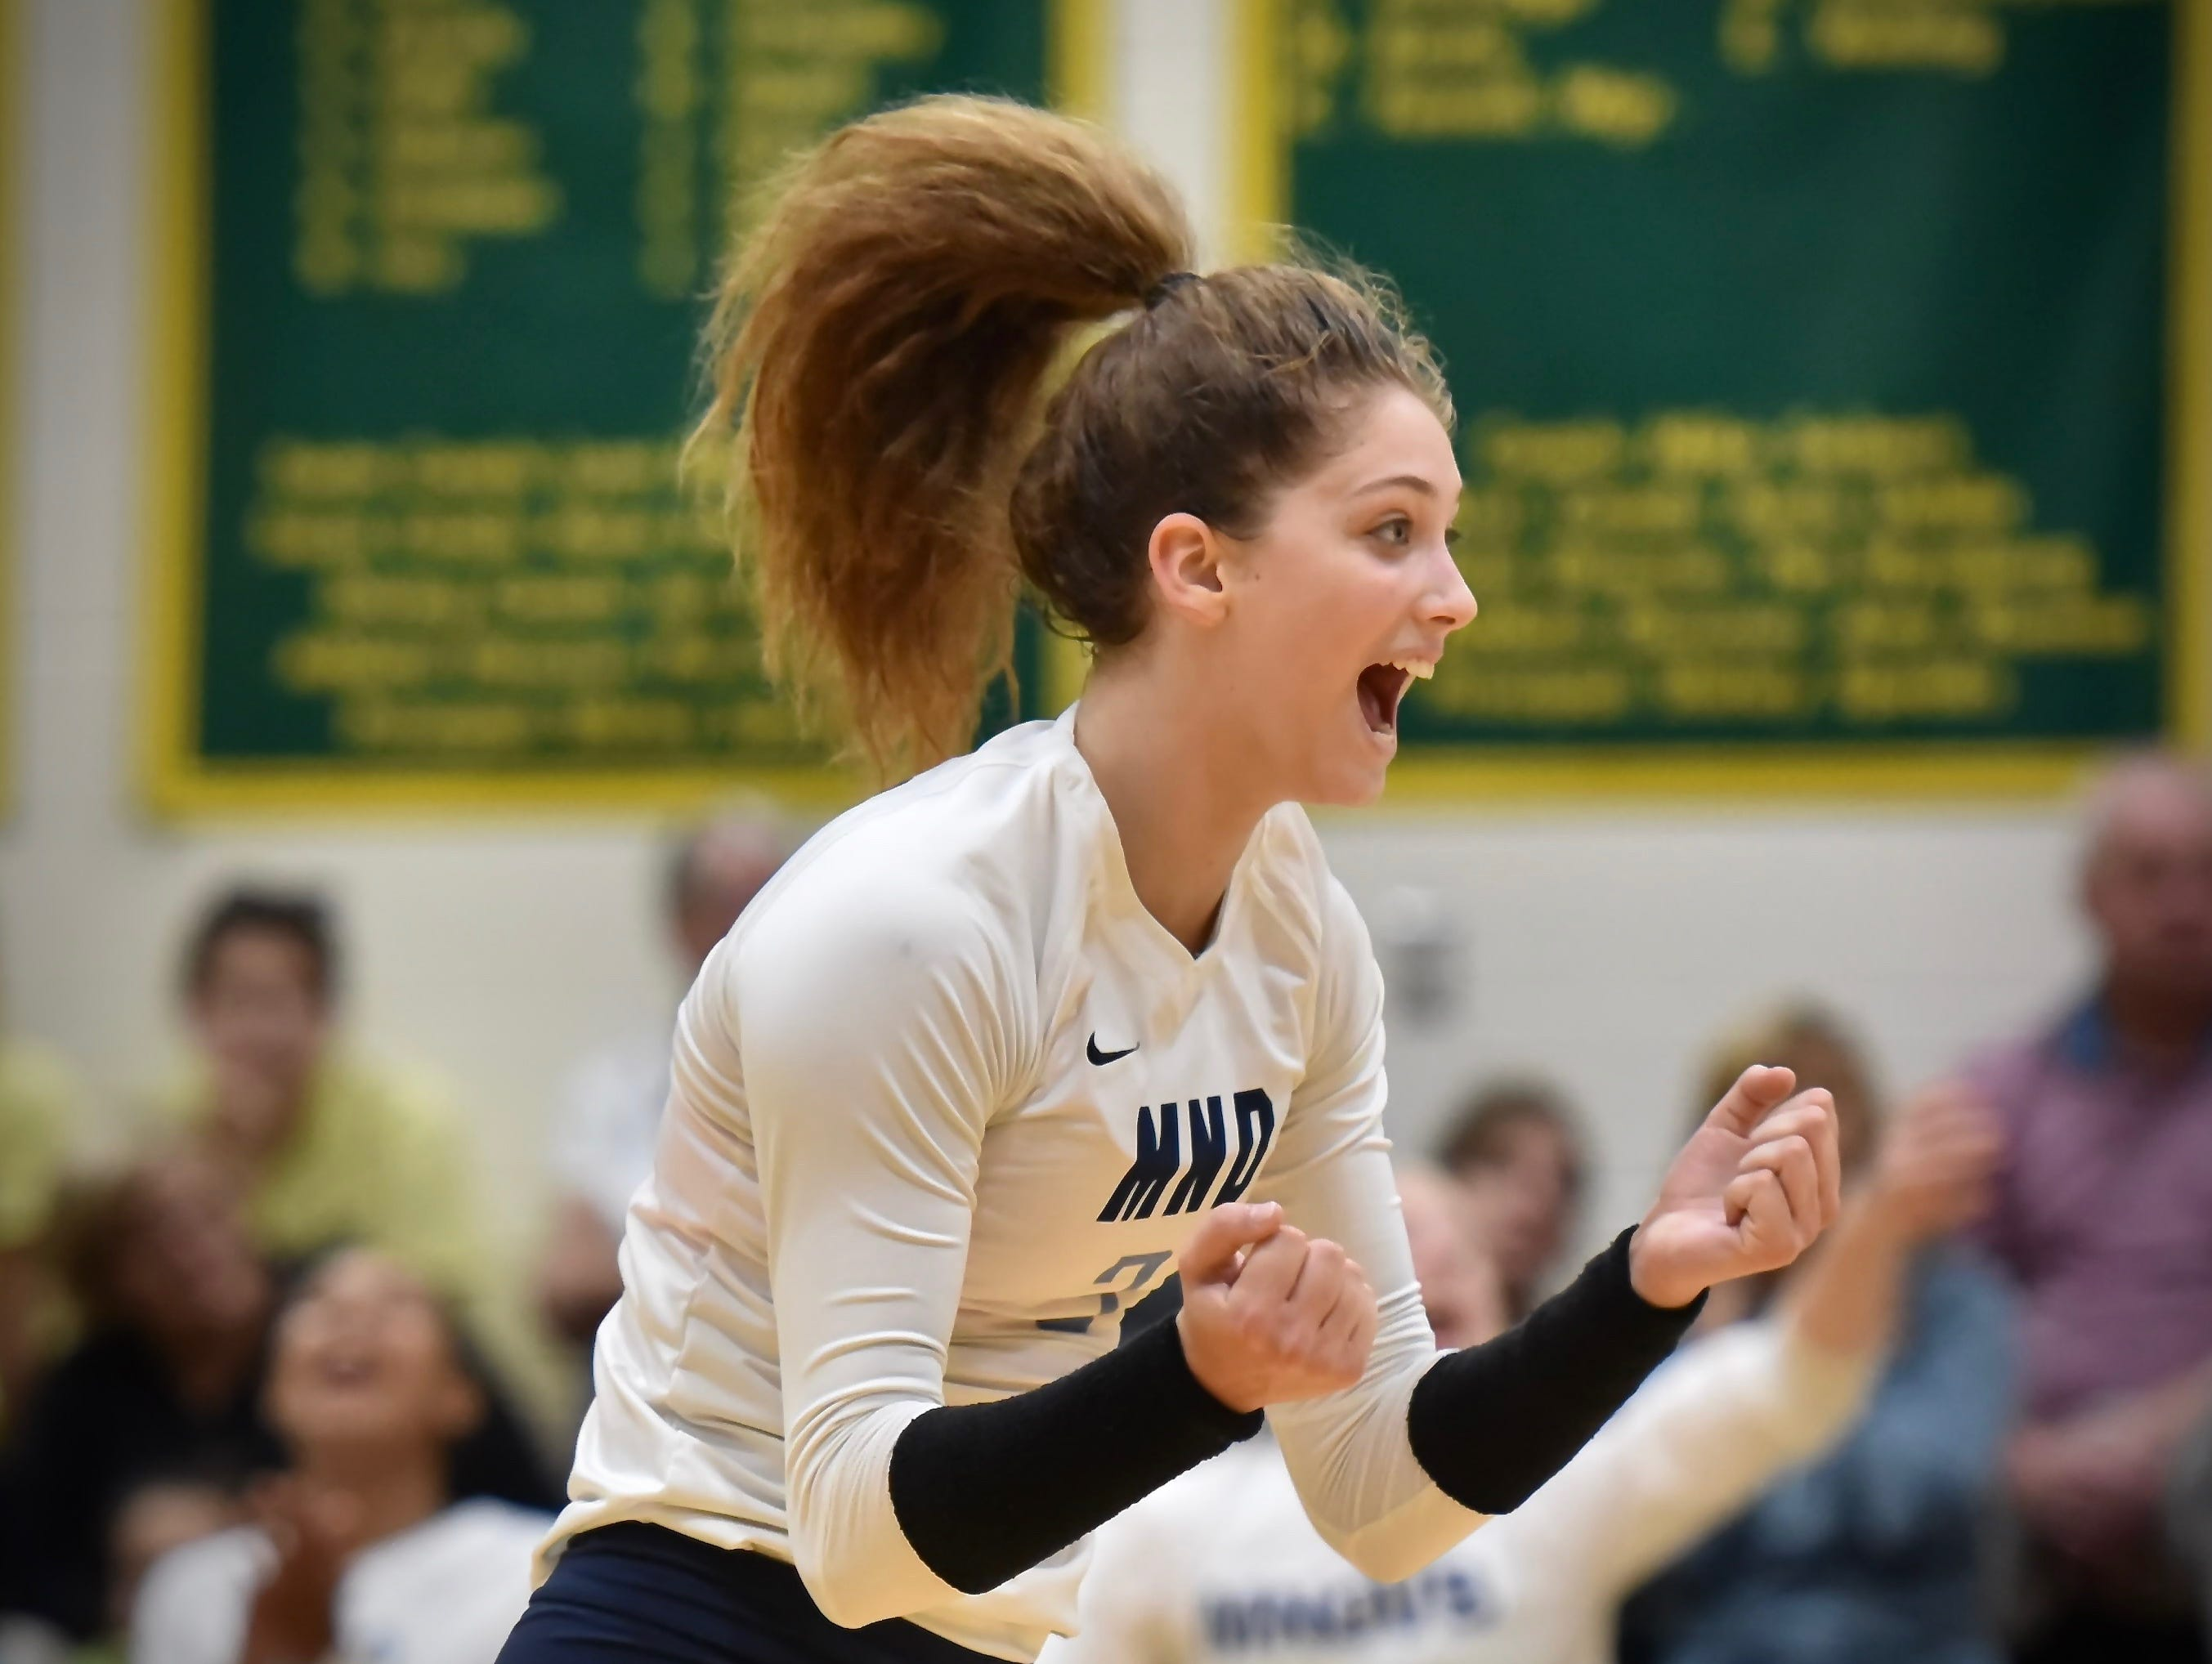 Sam Wolf celebrates a second set victory for Mount Notre Dame over Ursuline Academy Tuesday, Sept. 11, 2018 at Ursuline Academy